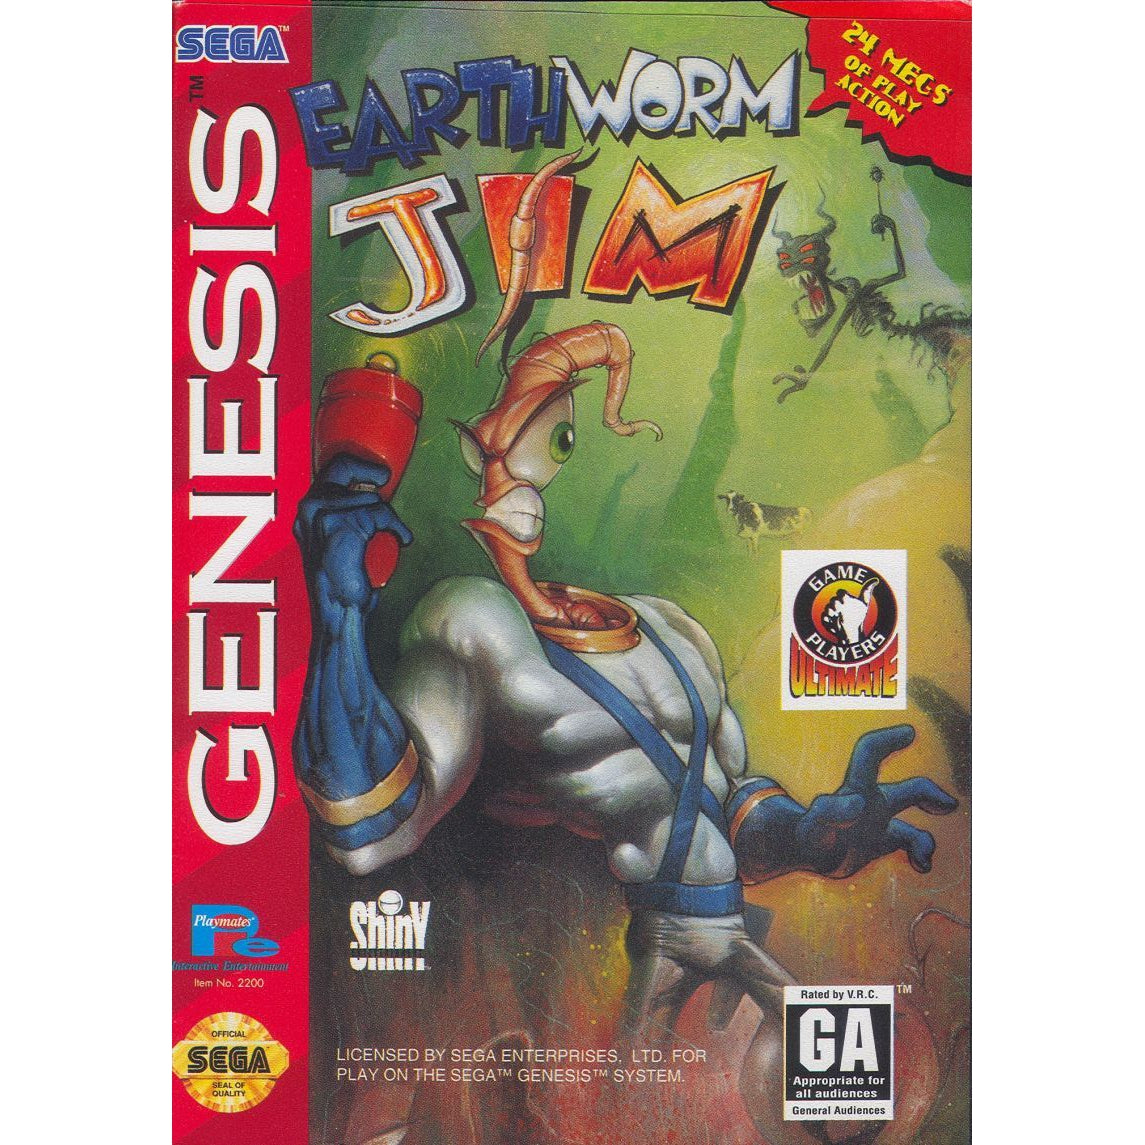 Earthworm Jim - Sega Genesis Game Complete - YourGamingShop.com - Buy, Sell, Trade Video Games Online. 120 Day Warranty. Satisfaction Guaranteed.